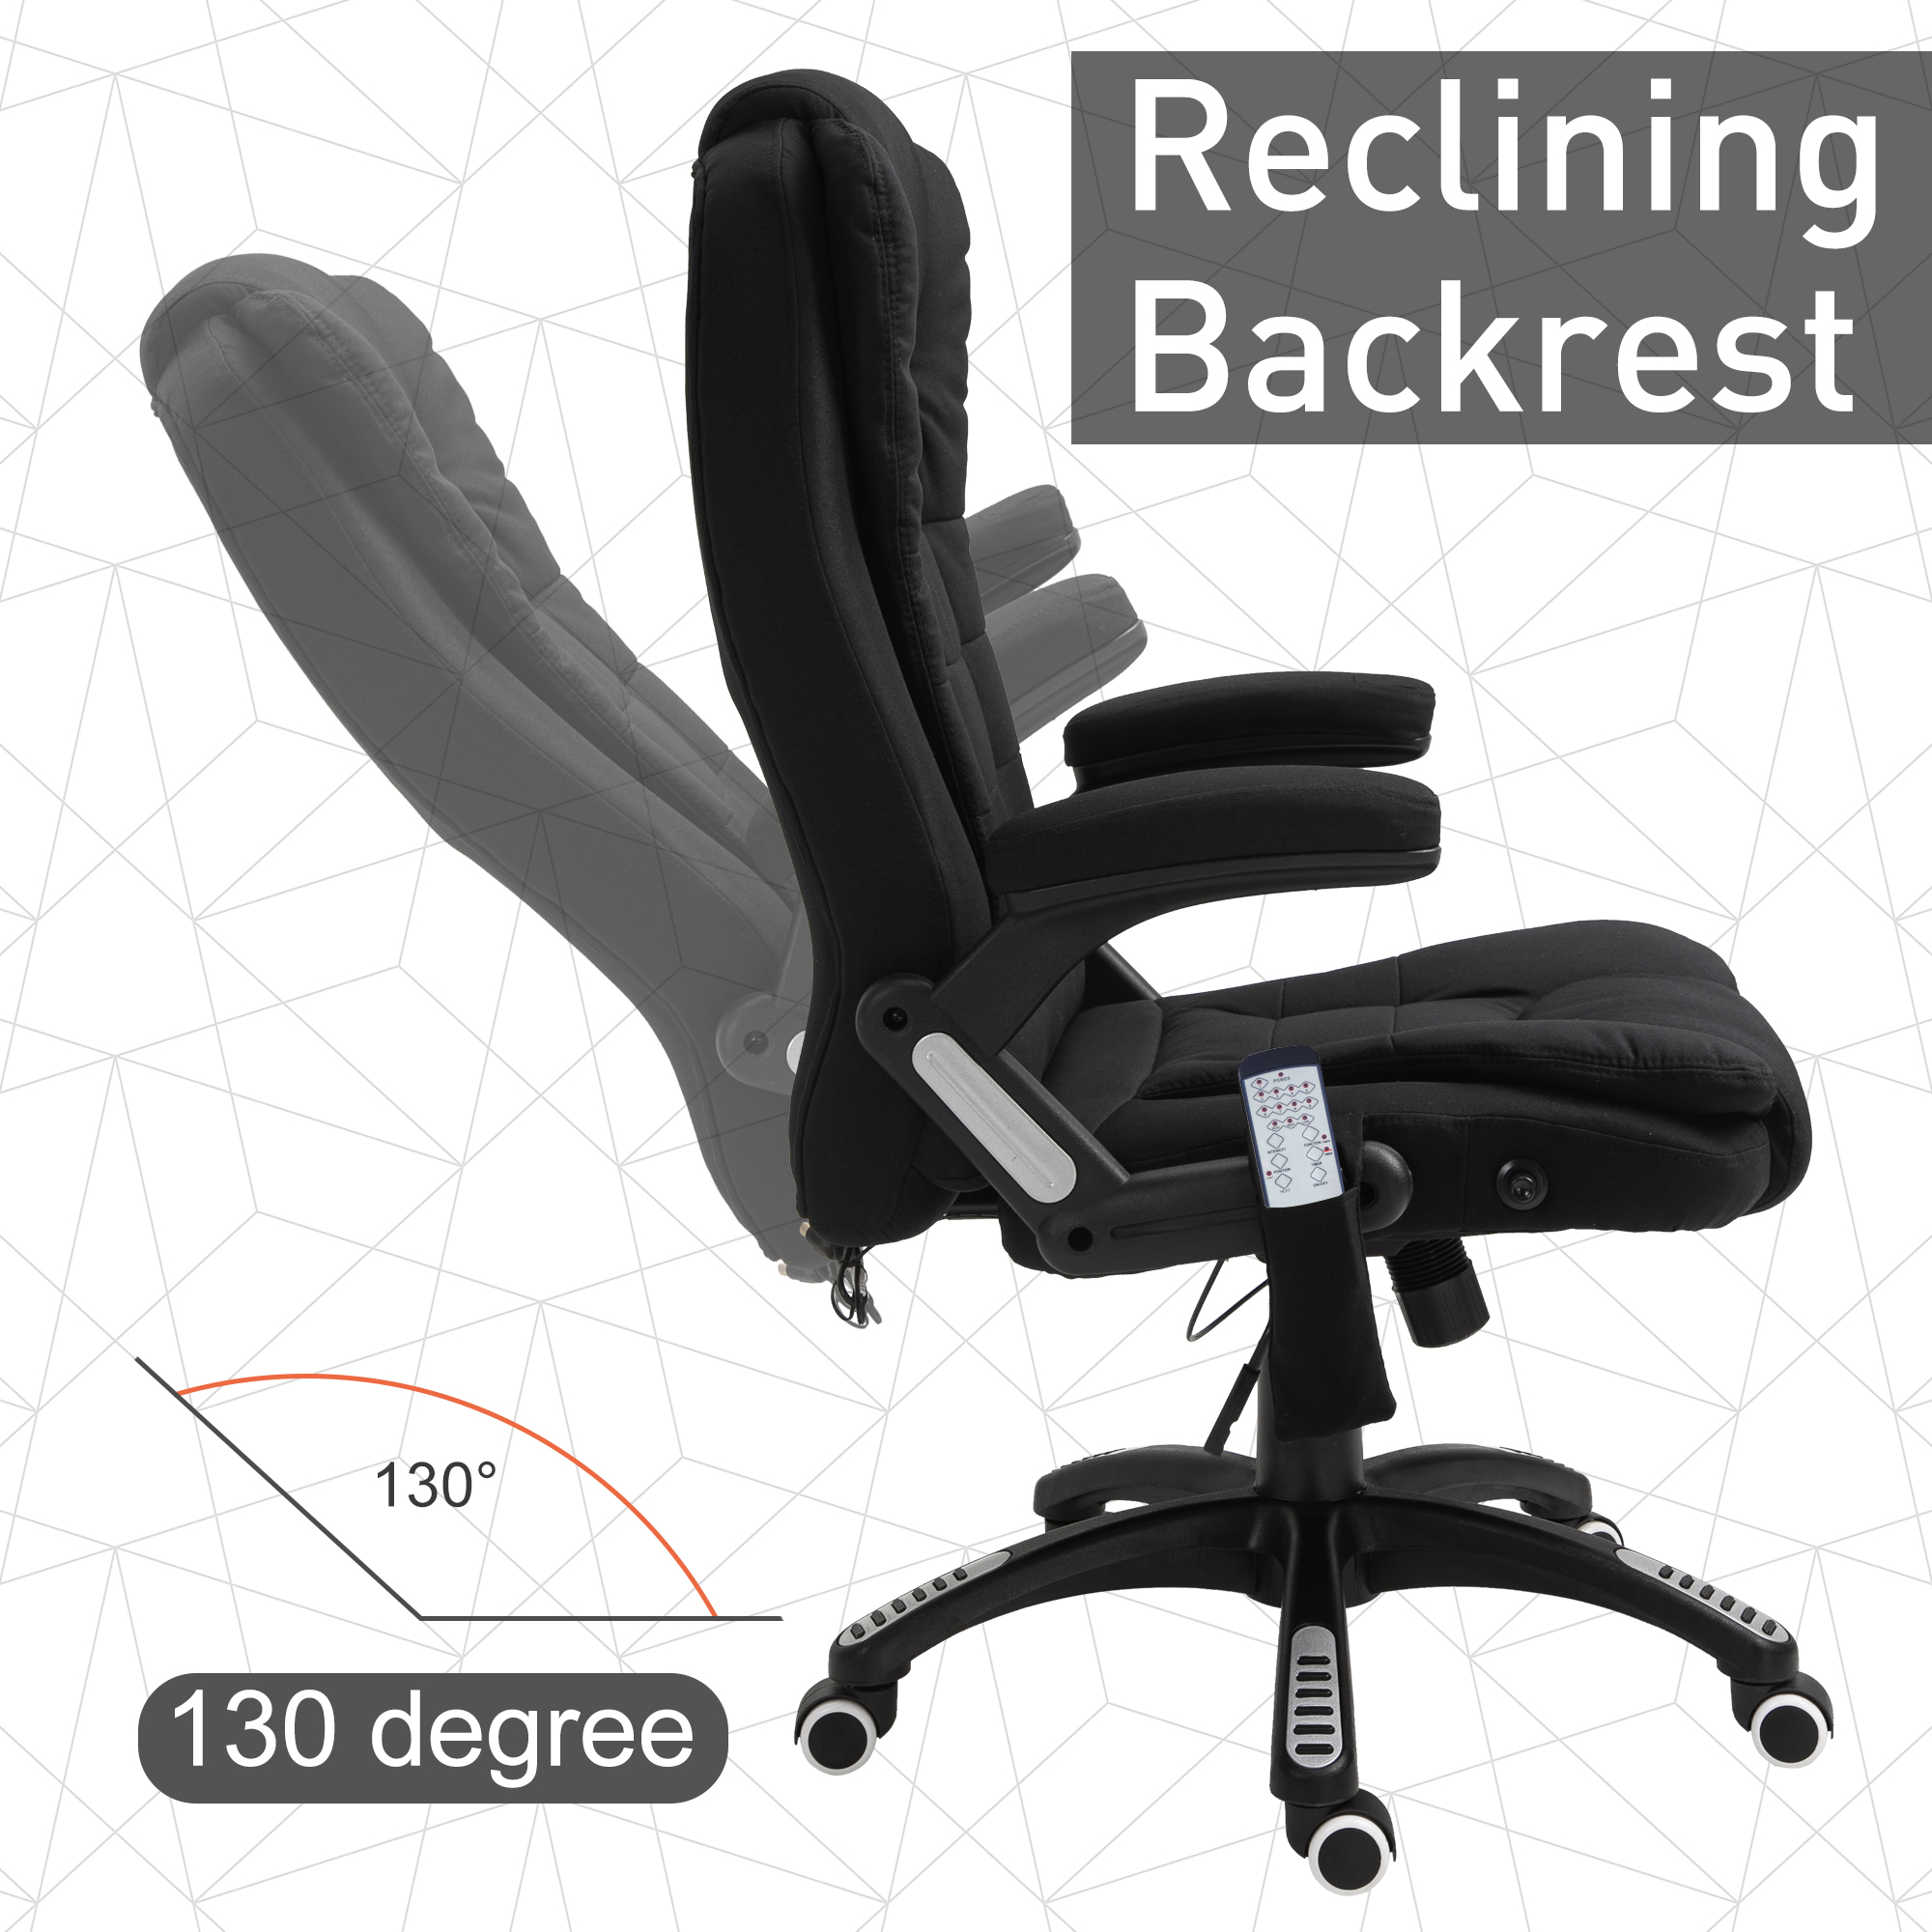 thumbnail 9 - Executive Reclining Chair 130°w/6 Heating Massage Points Relaxing Headrest